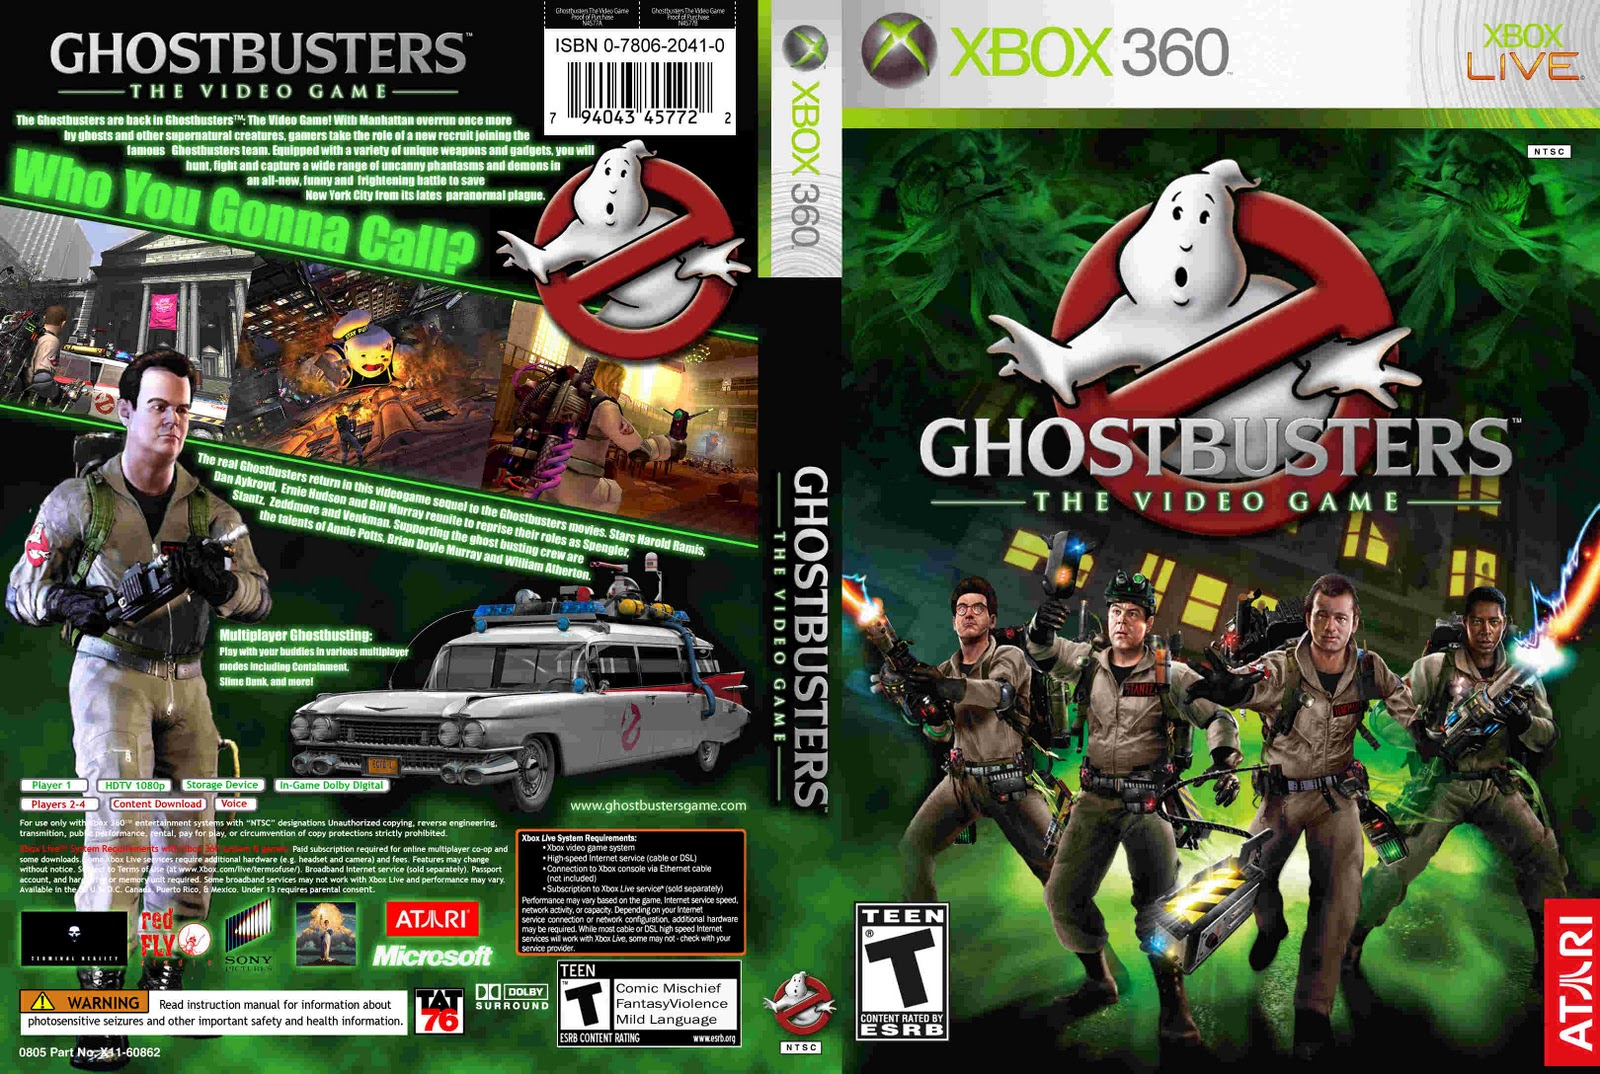 ghostbusters xbox 360 video game videos